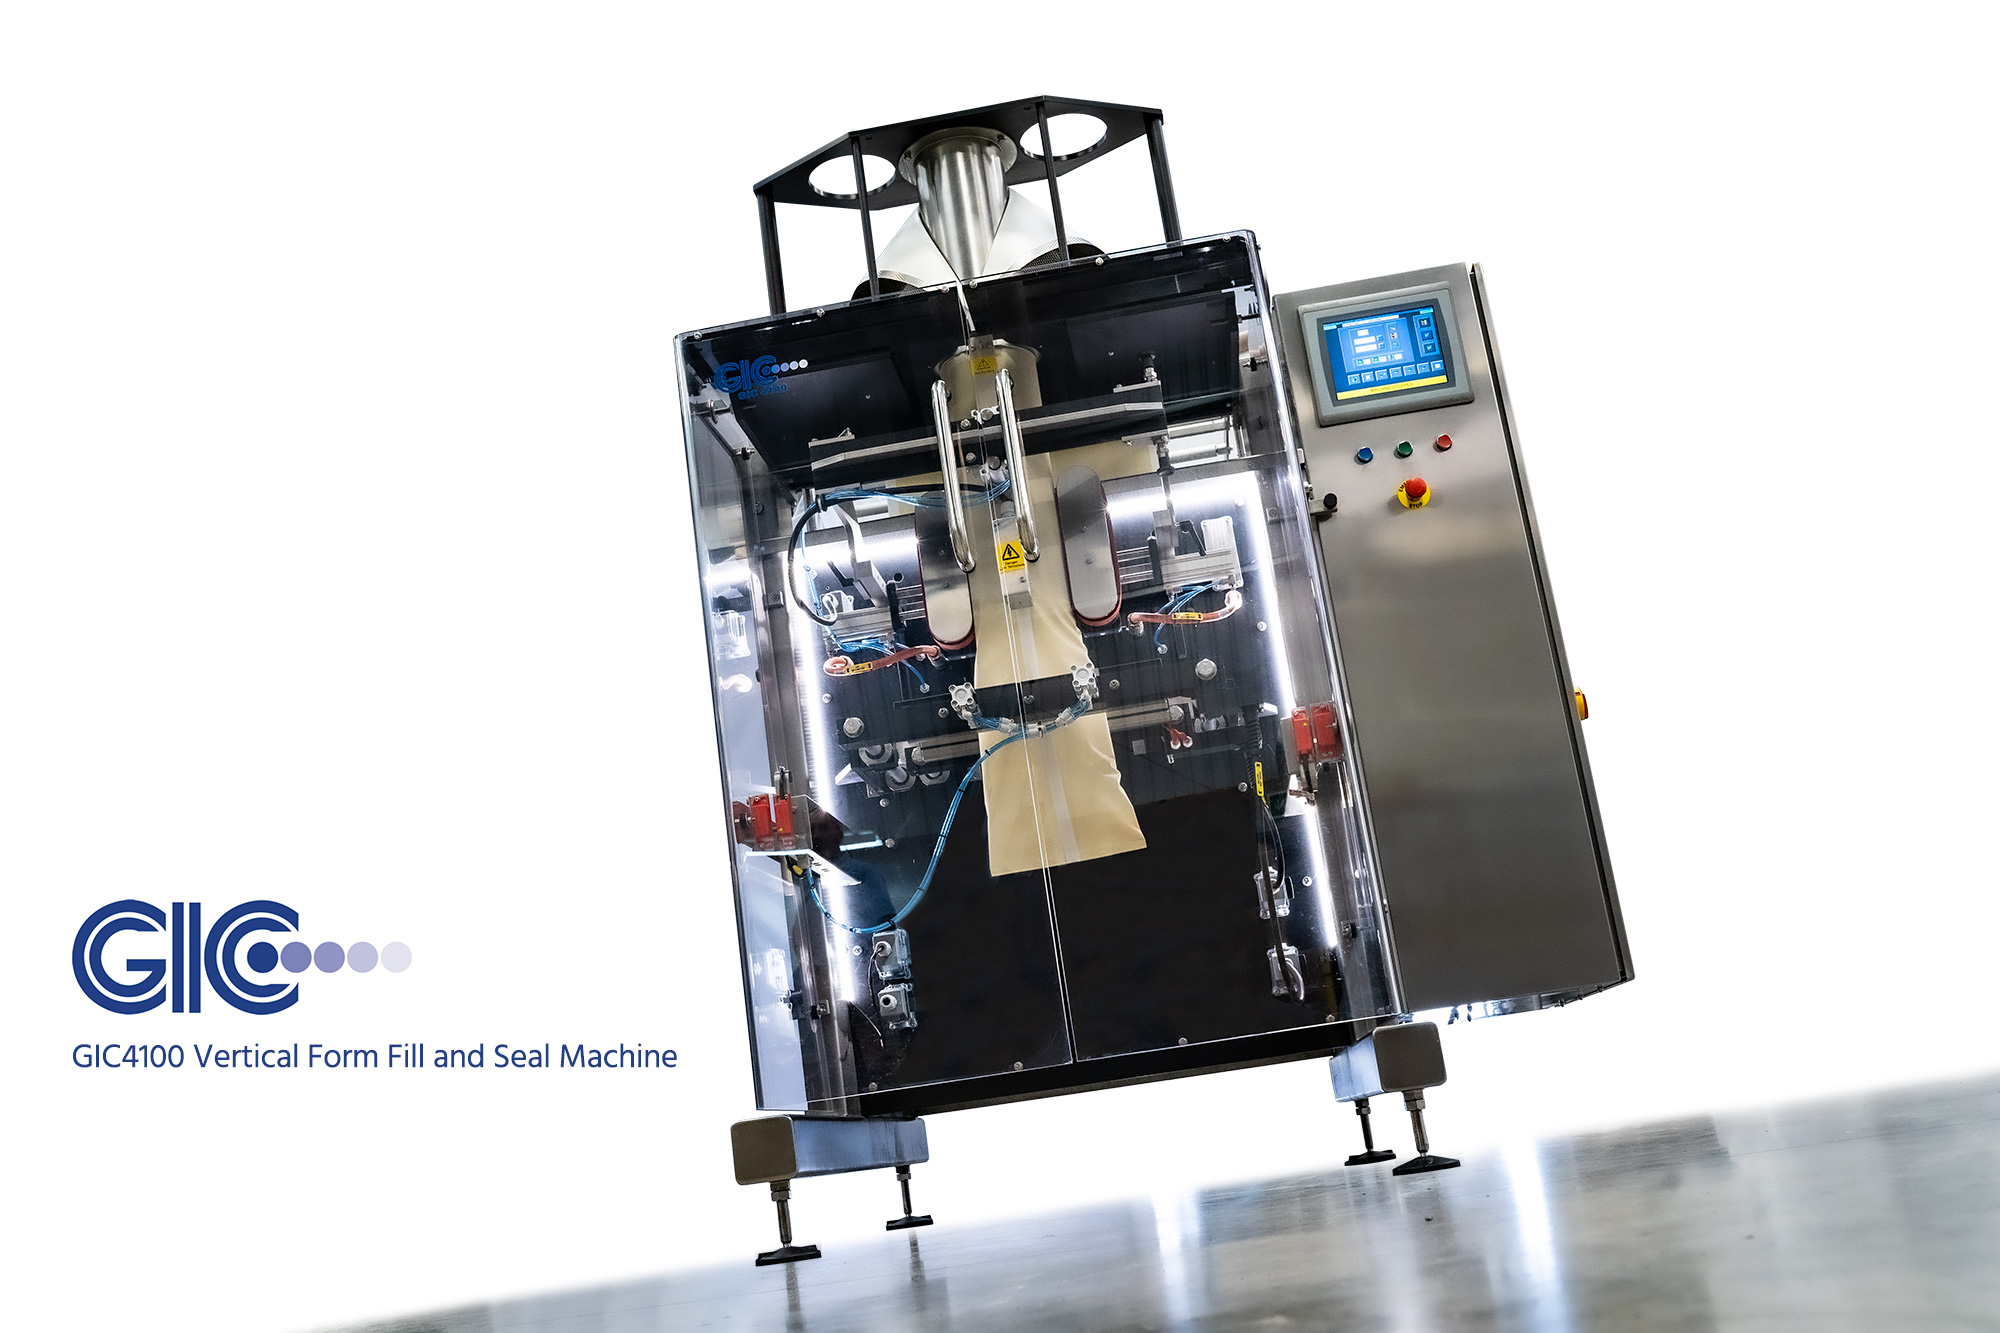 gic 4100 vffs bagging machine uk manufacturer